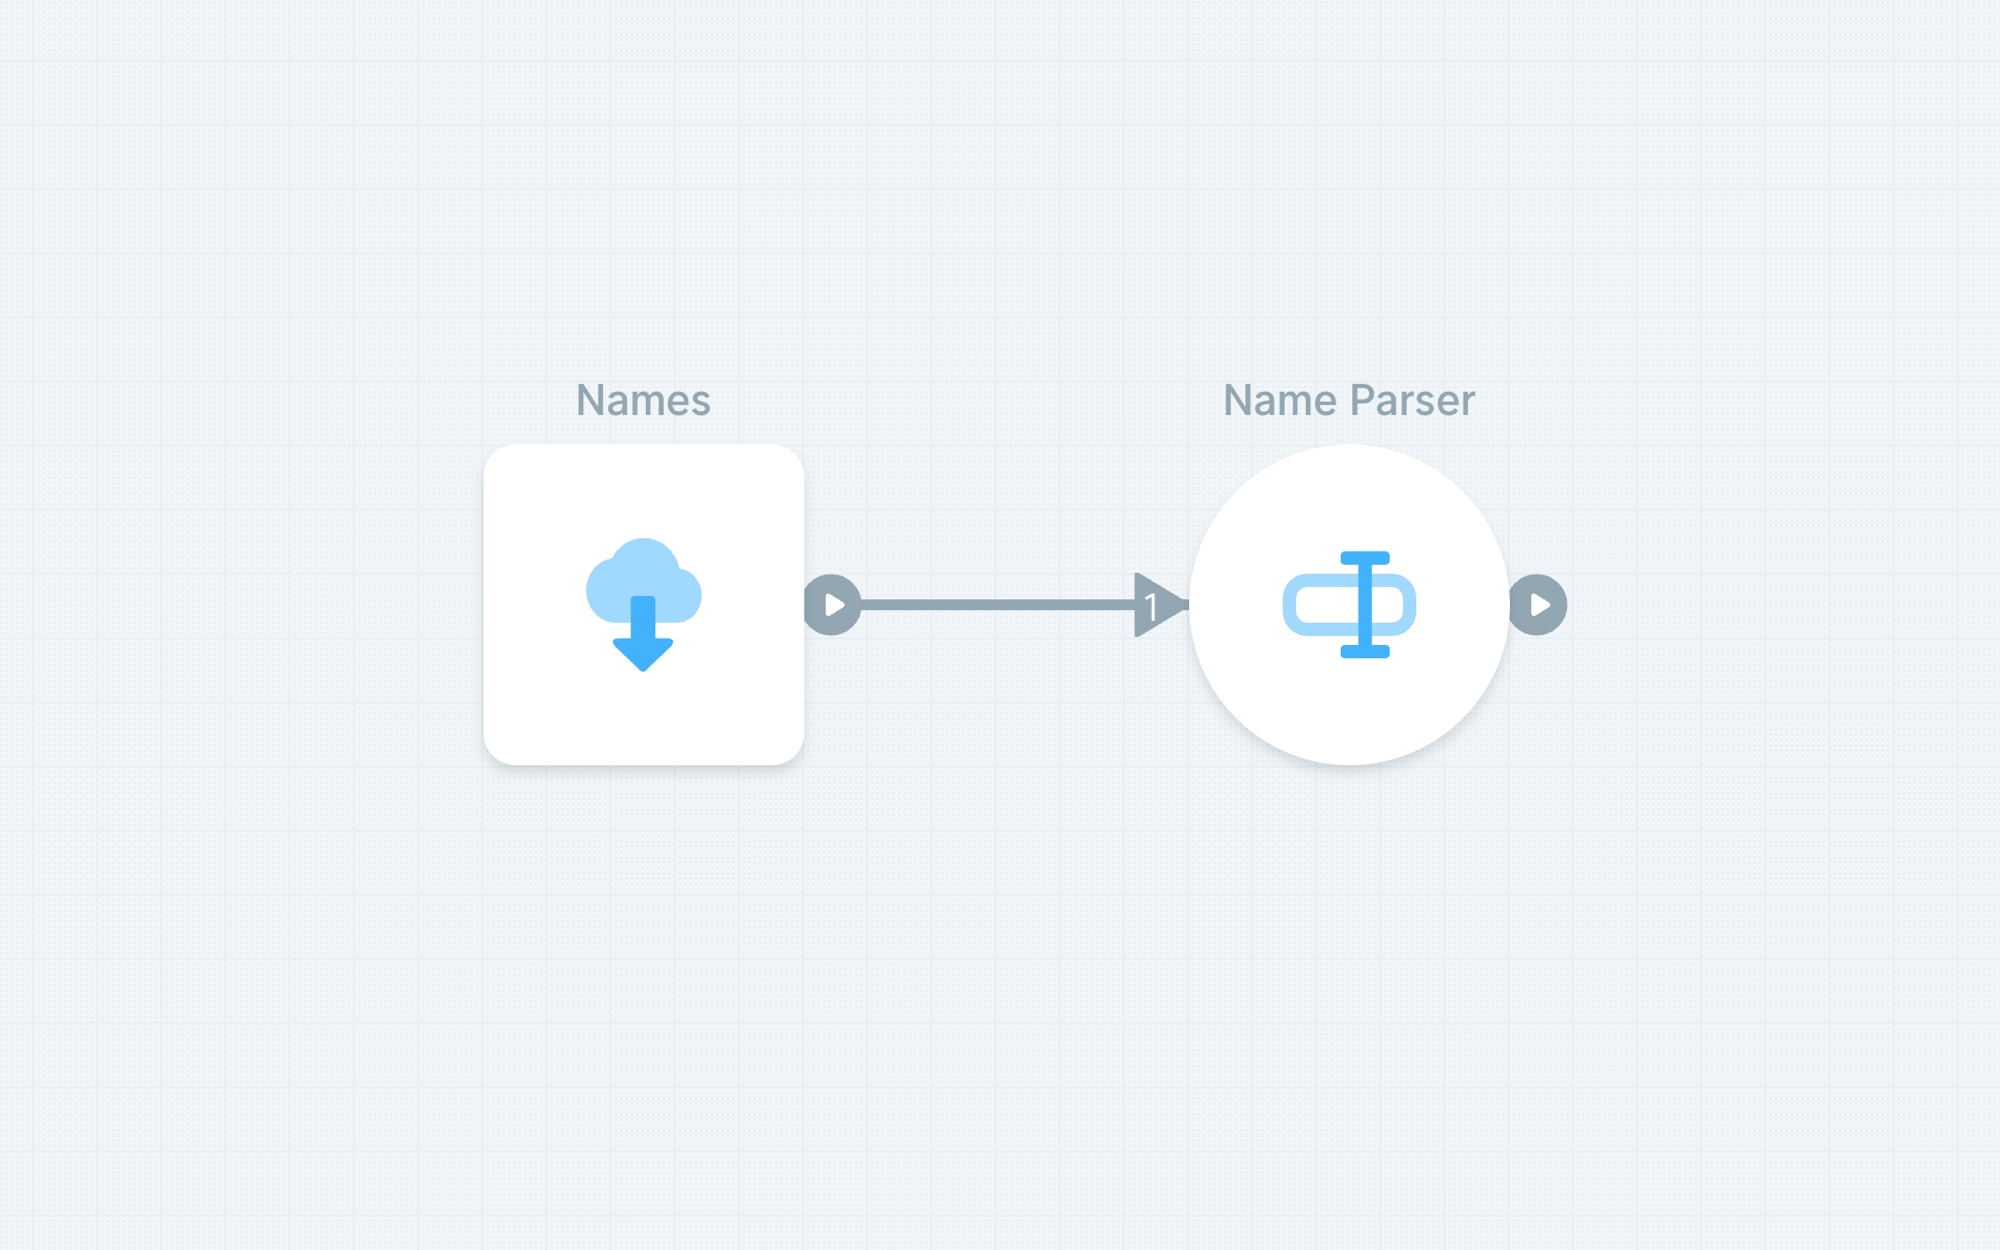 Separating name fields